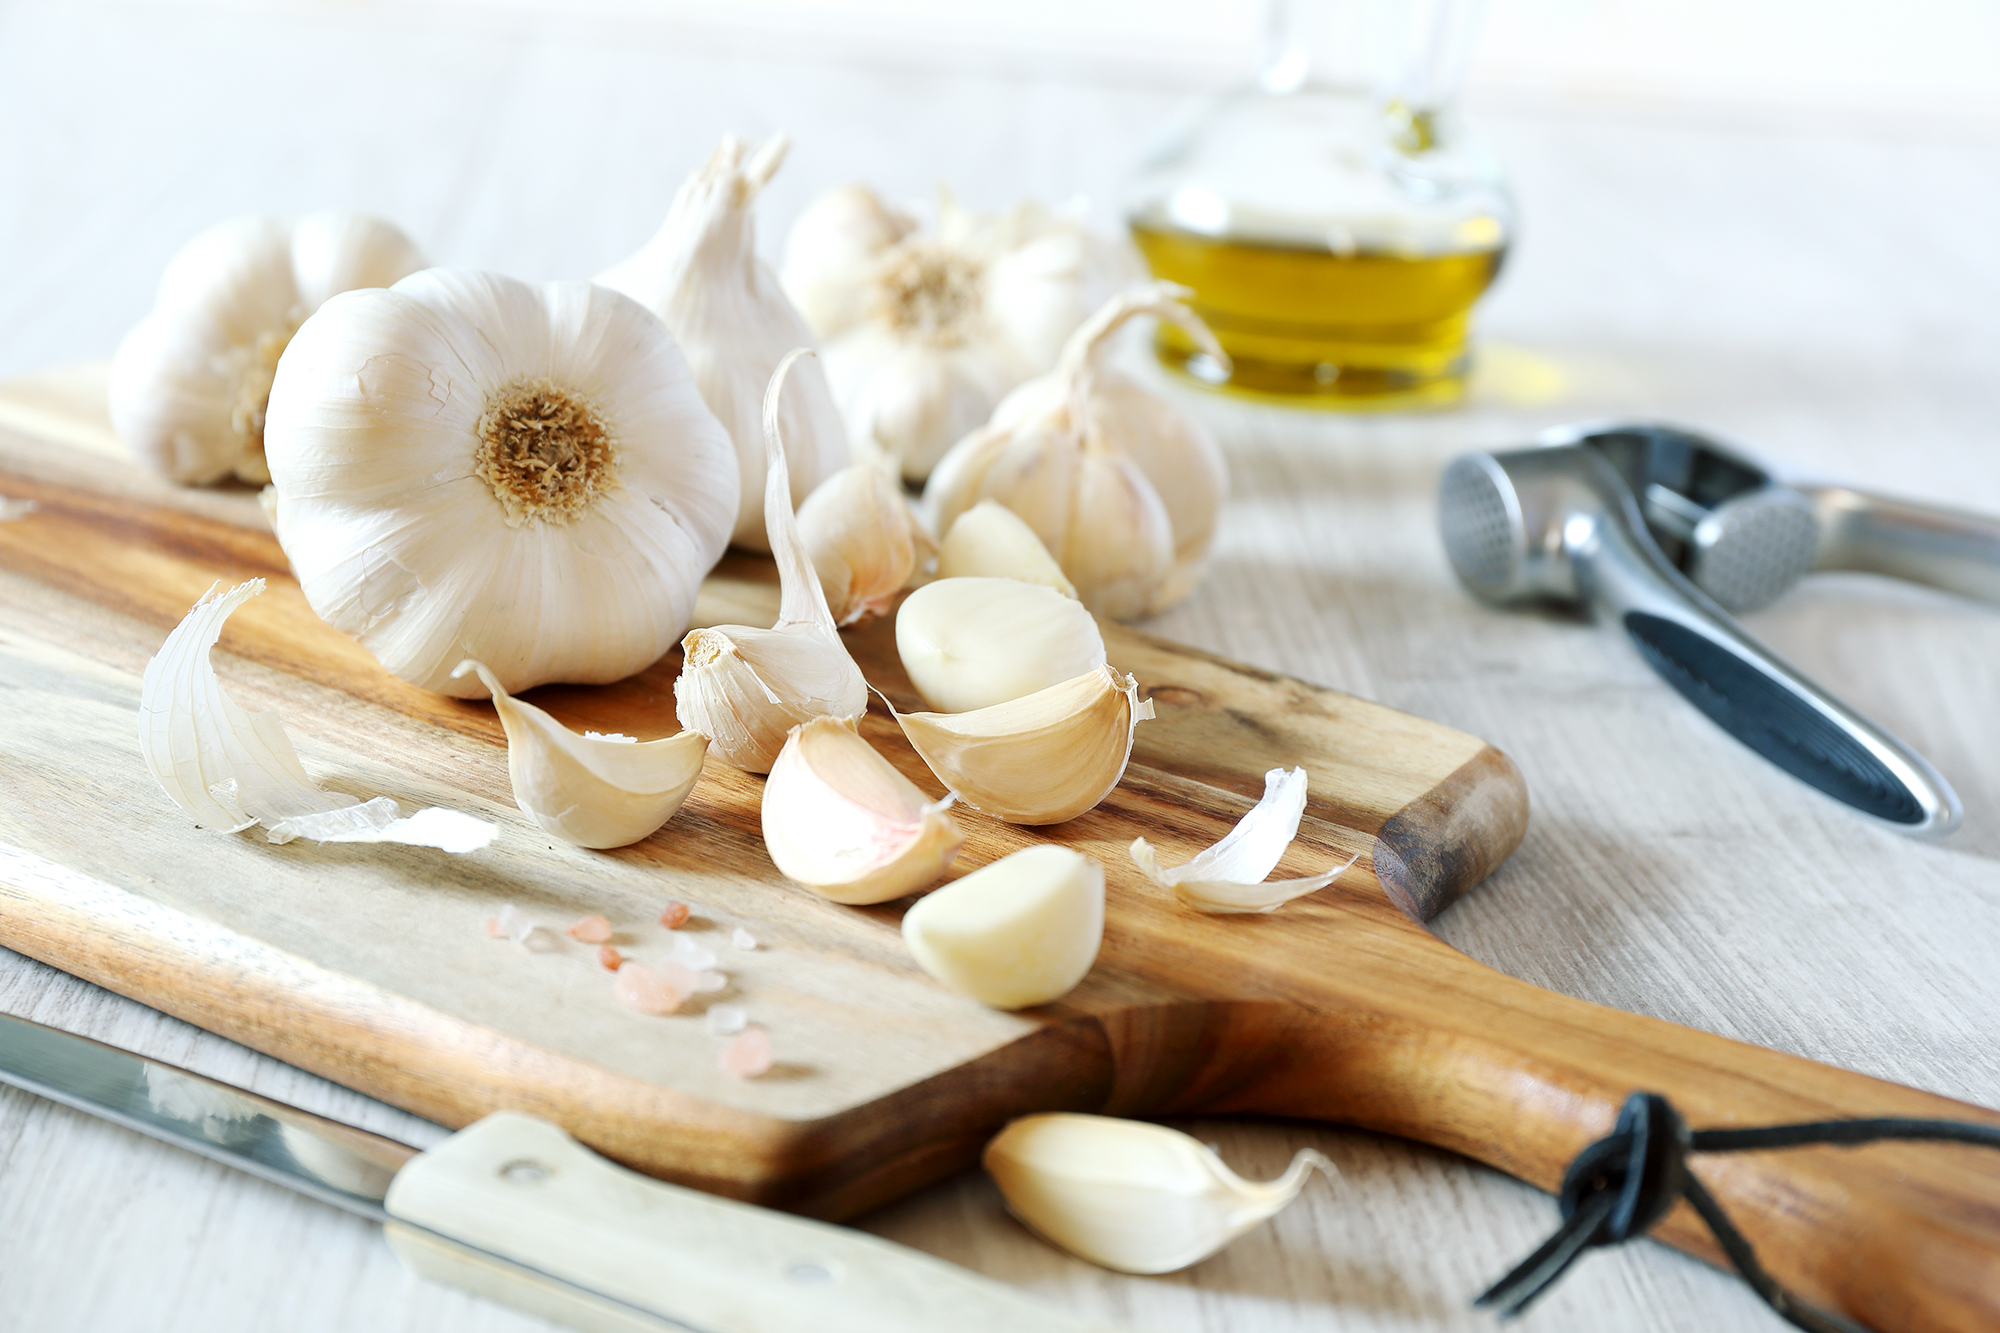 Bulbs of garlic, garlic press and olive oil